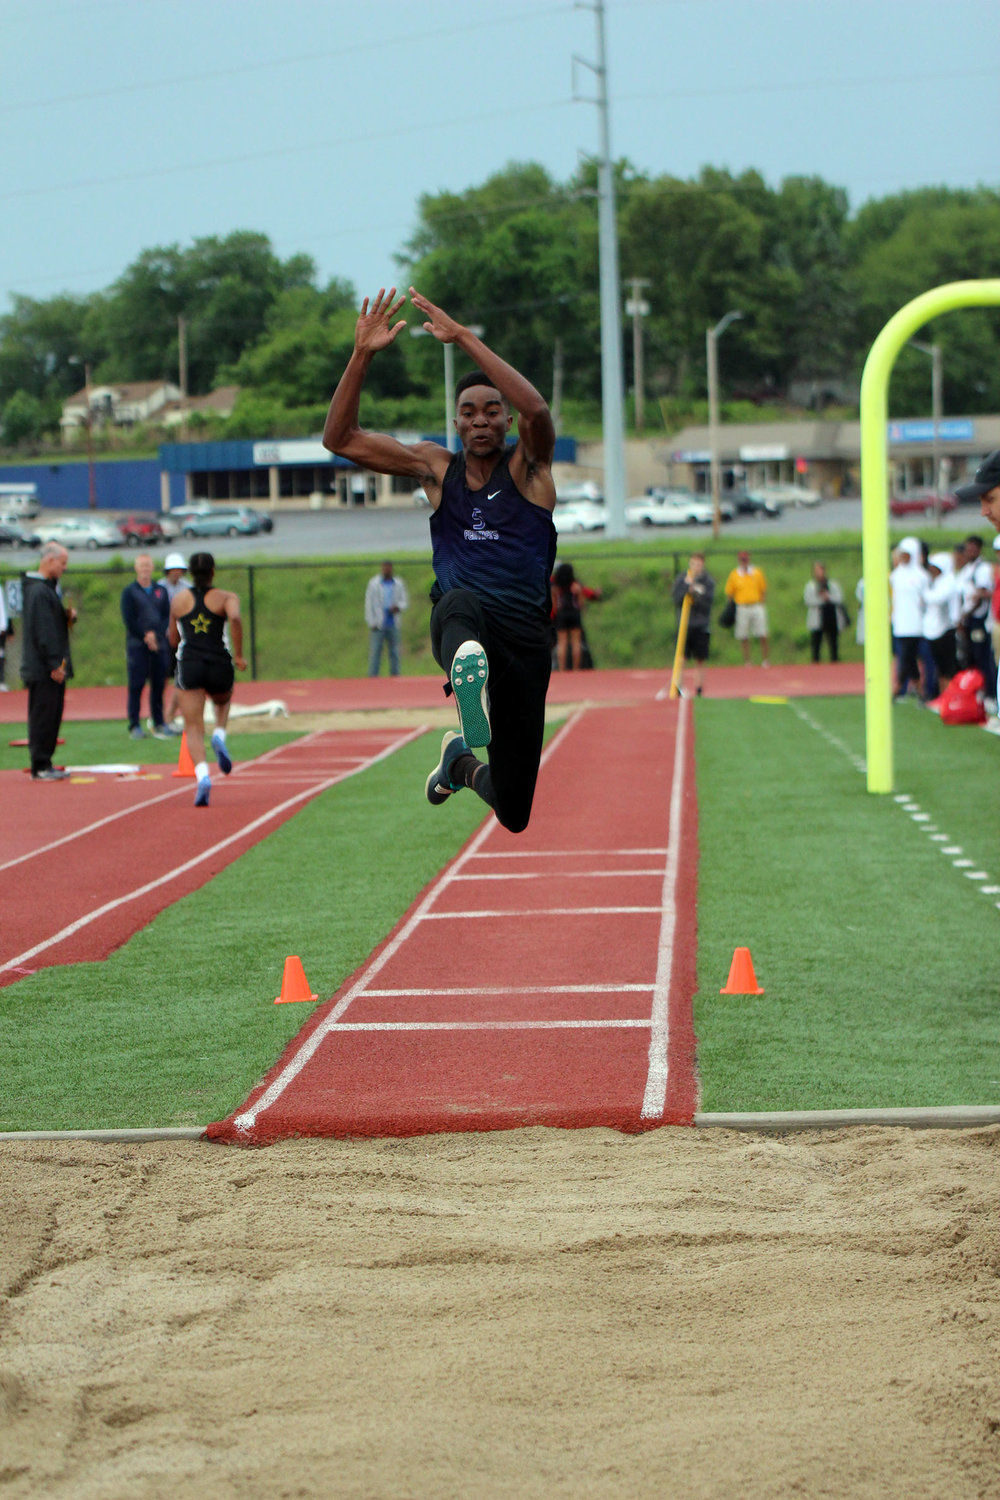 CODY THORN/Citizen photo Park Hill South's Benjamin Owere skies during the triple jump during the Class 5 Sectional 4 meet on Saturday, May 19, at William Chrisman High School in Independence, Mo.